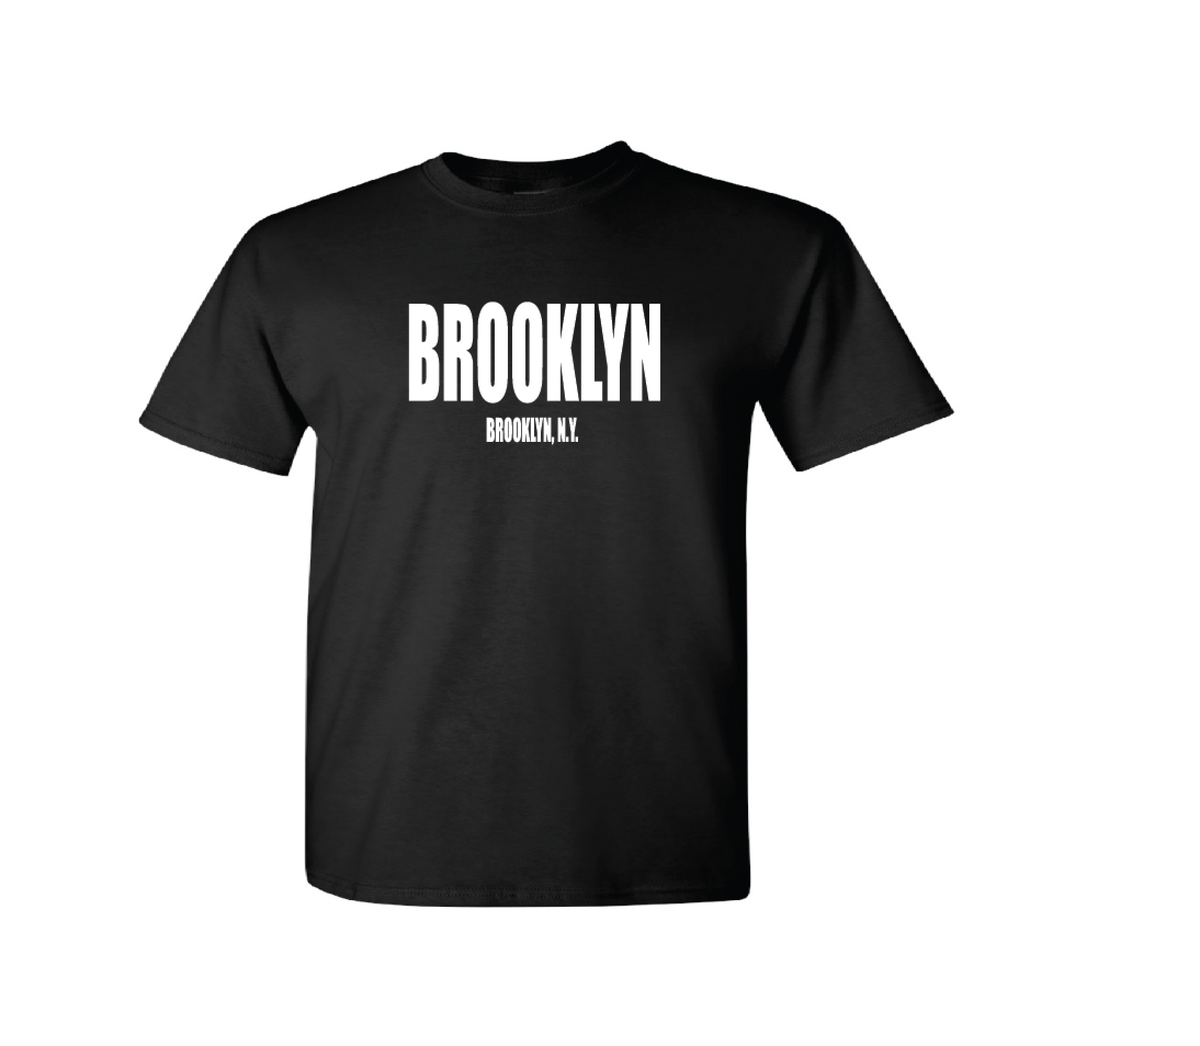 Brooklyn Tshirt  by Bucaleany